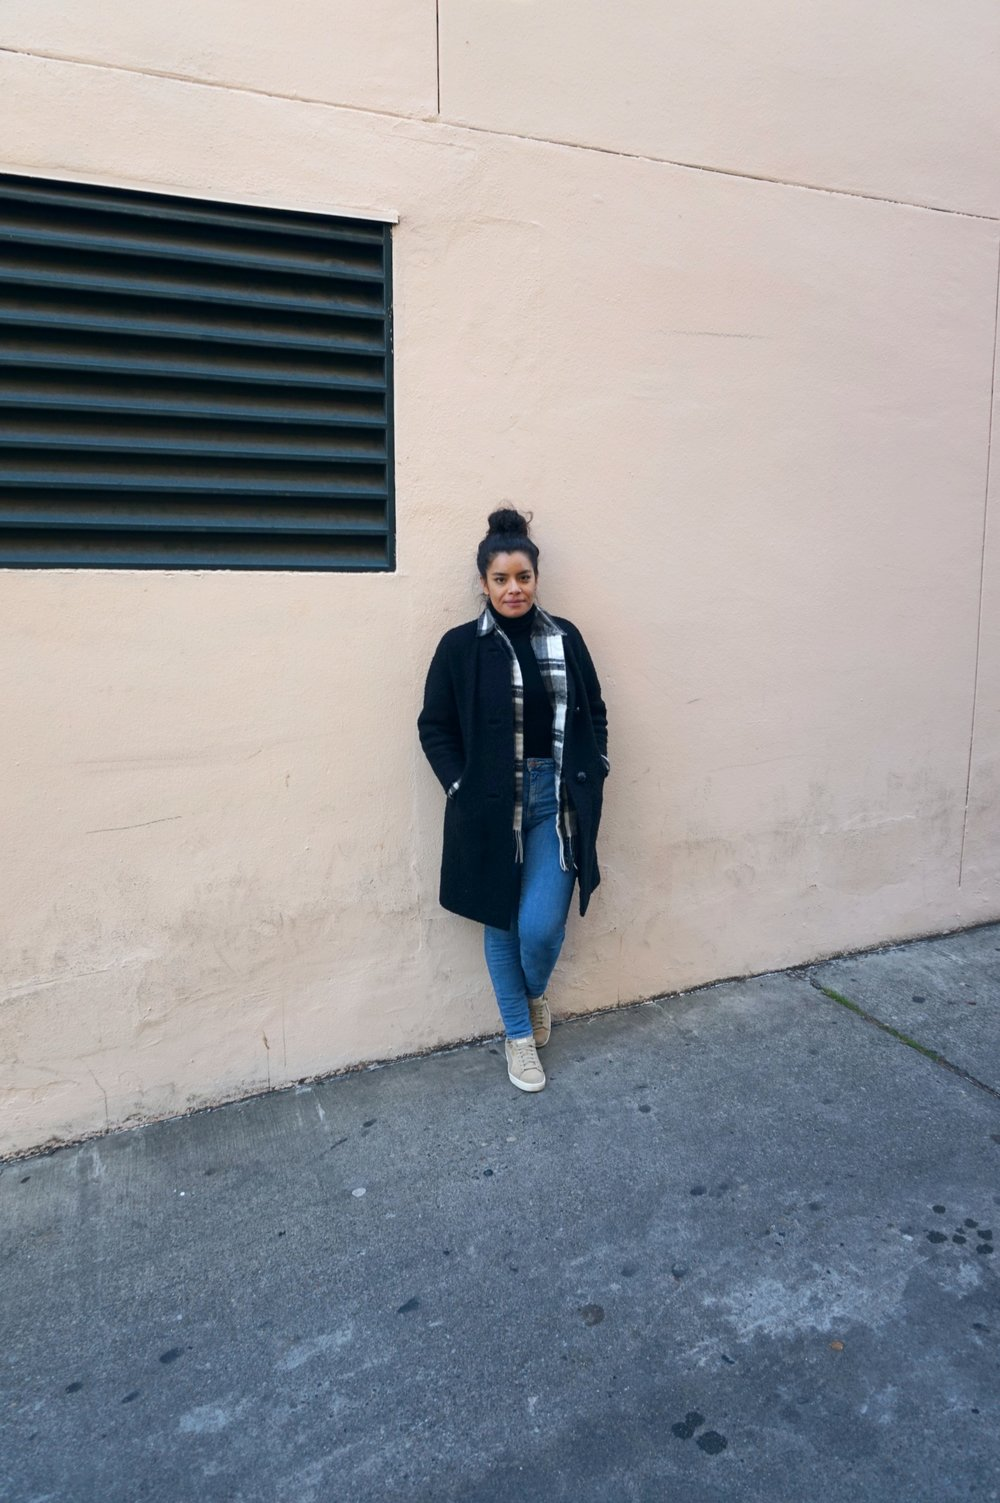 thrifted outfit in seattle, washington